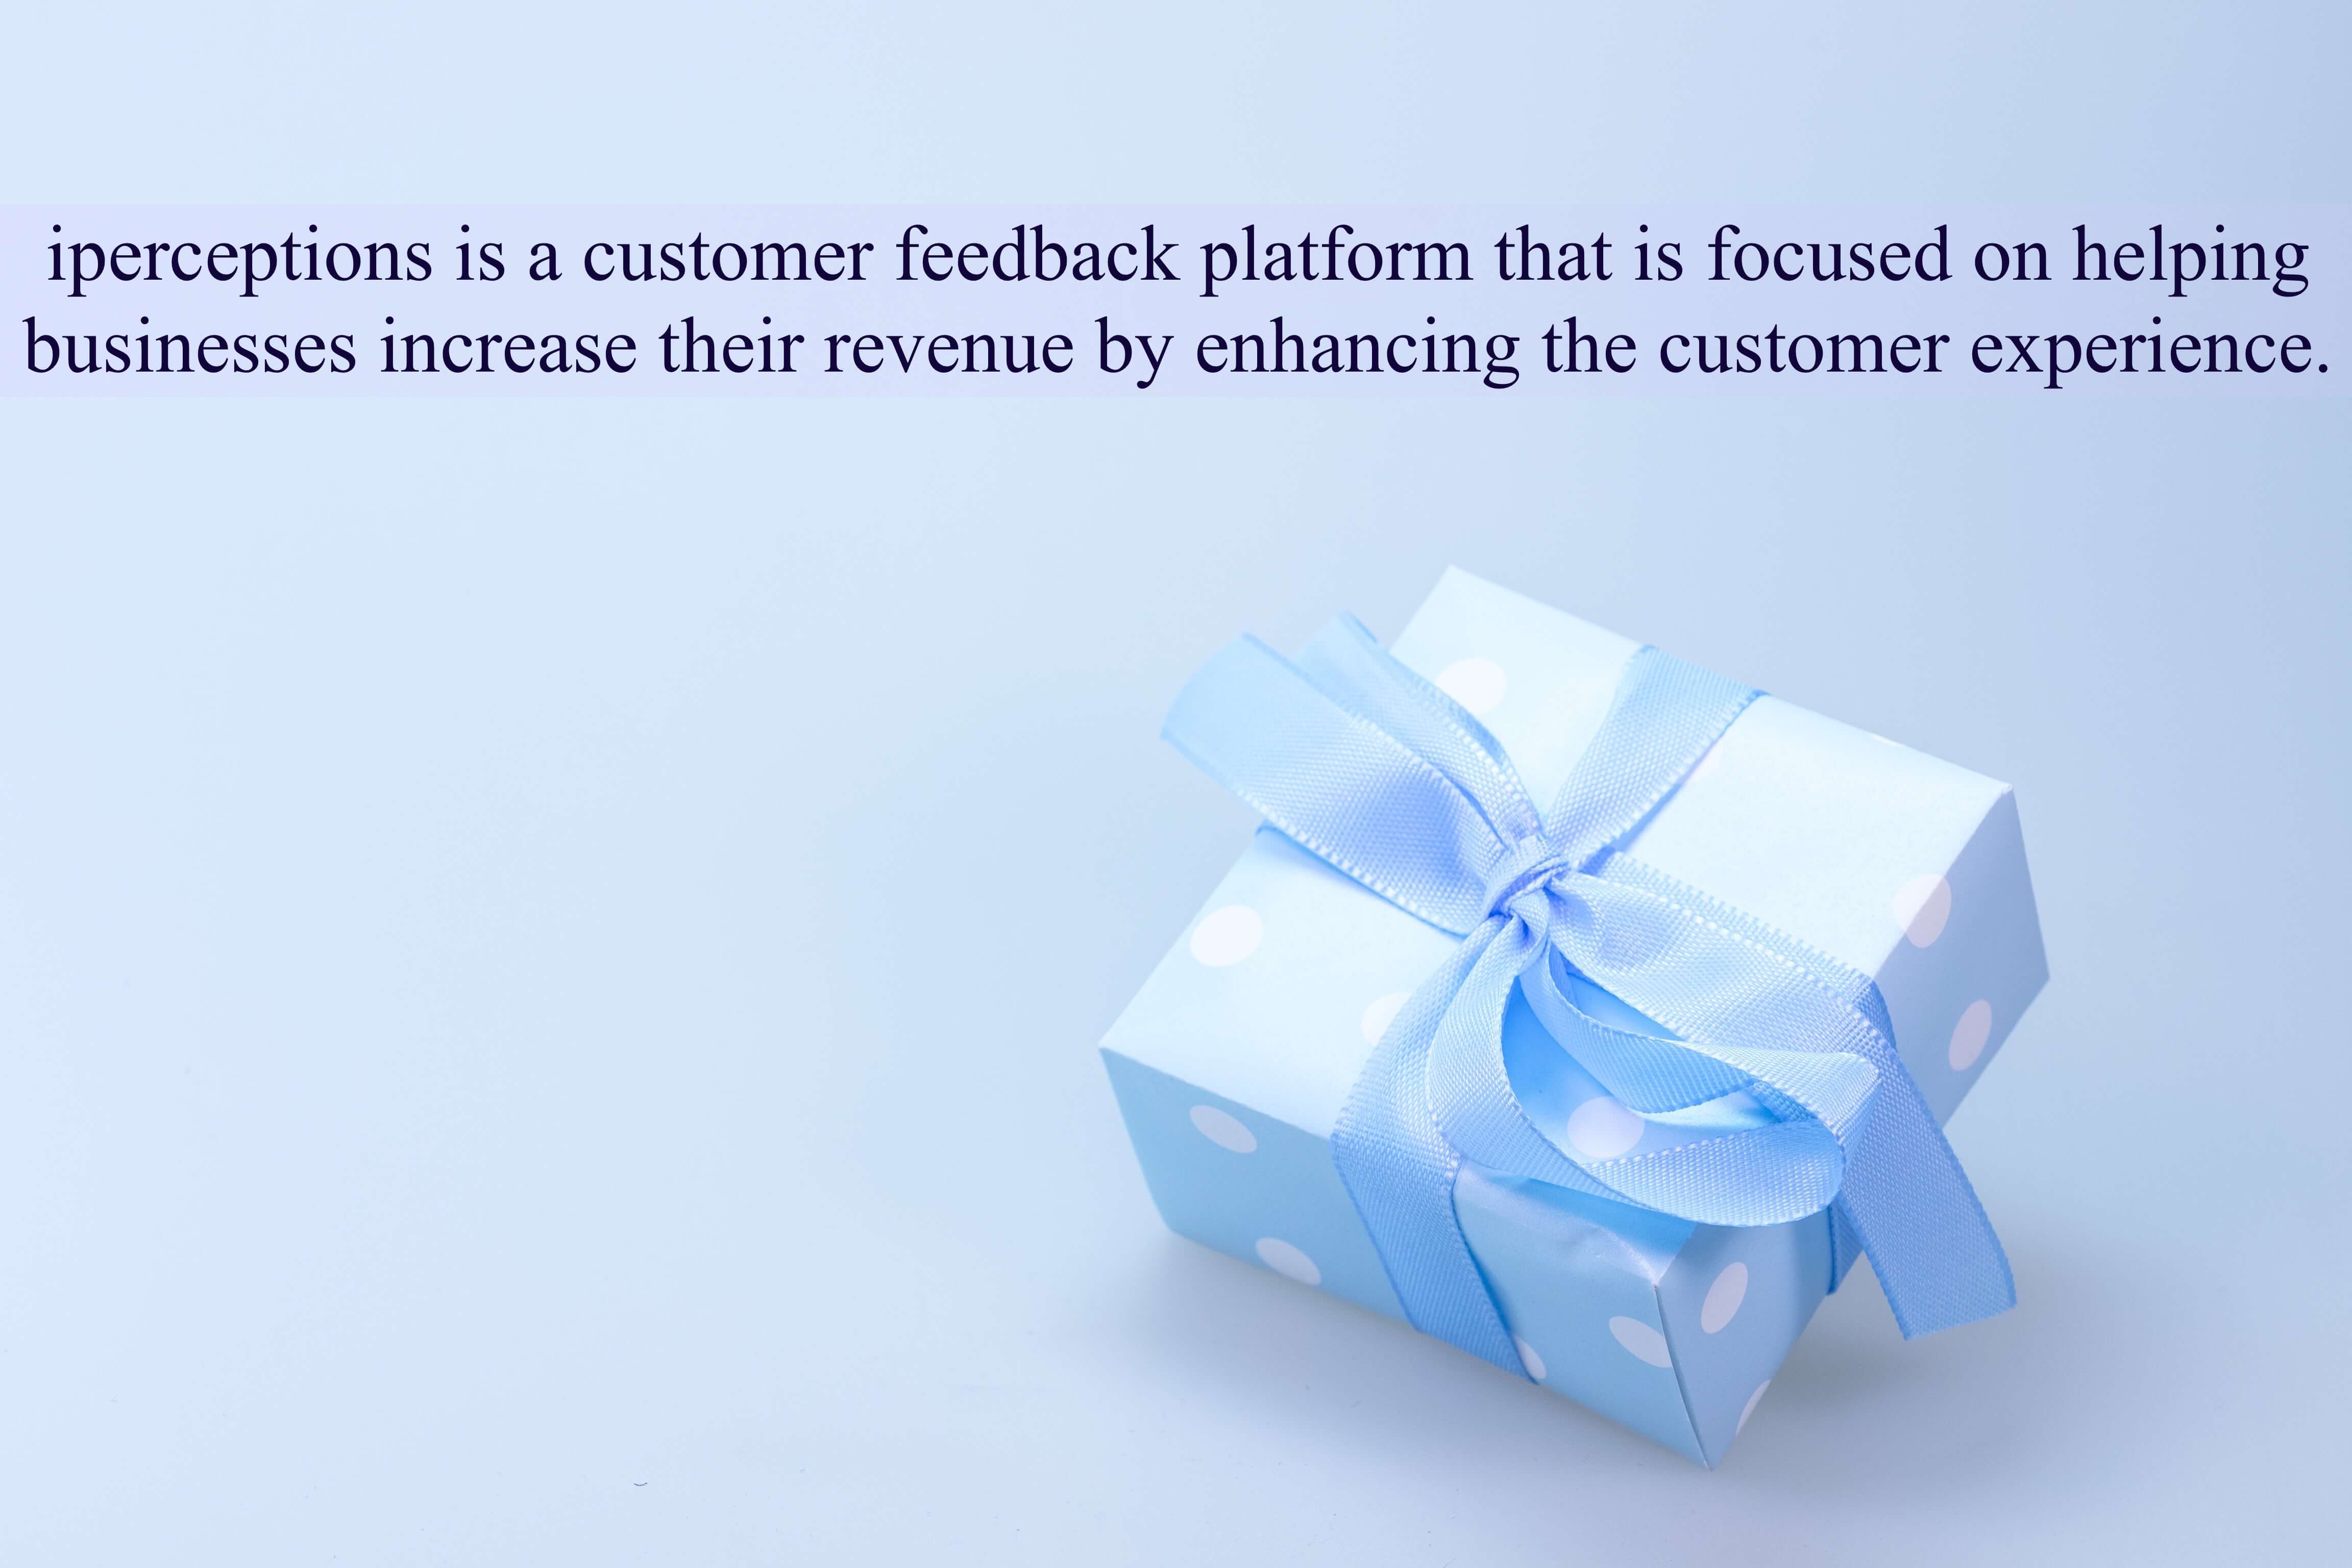 iperceptions is a customer feedback platform that is focused on helping businesses increase their revenue by enhancing the customer experience.